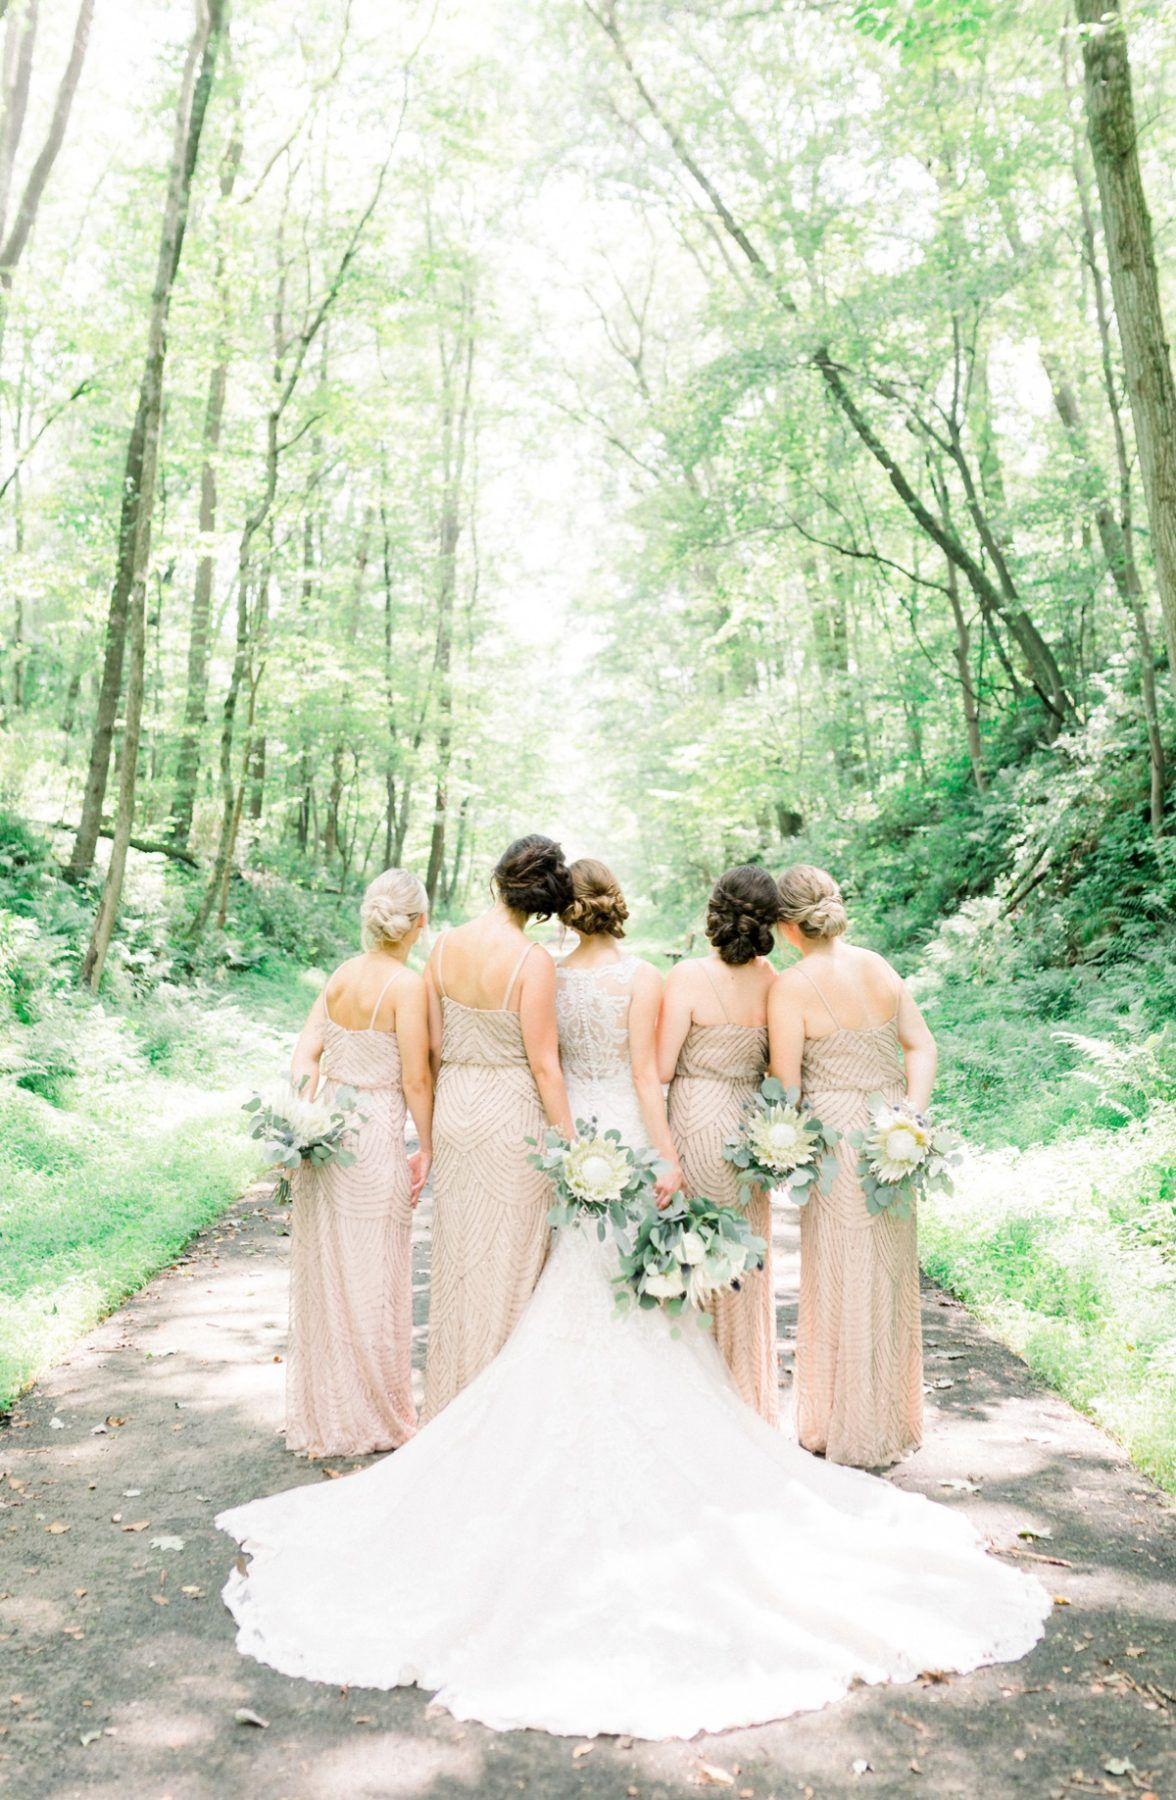 Romantic Forest Wedding At The Event Center At Waterworks Neutral Bridesmaid Dresses Neutral Wedding Colors Cathedral Length Wedding Dress [ 1800 x 1176 Pixel ]